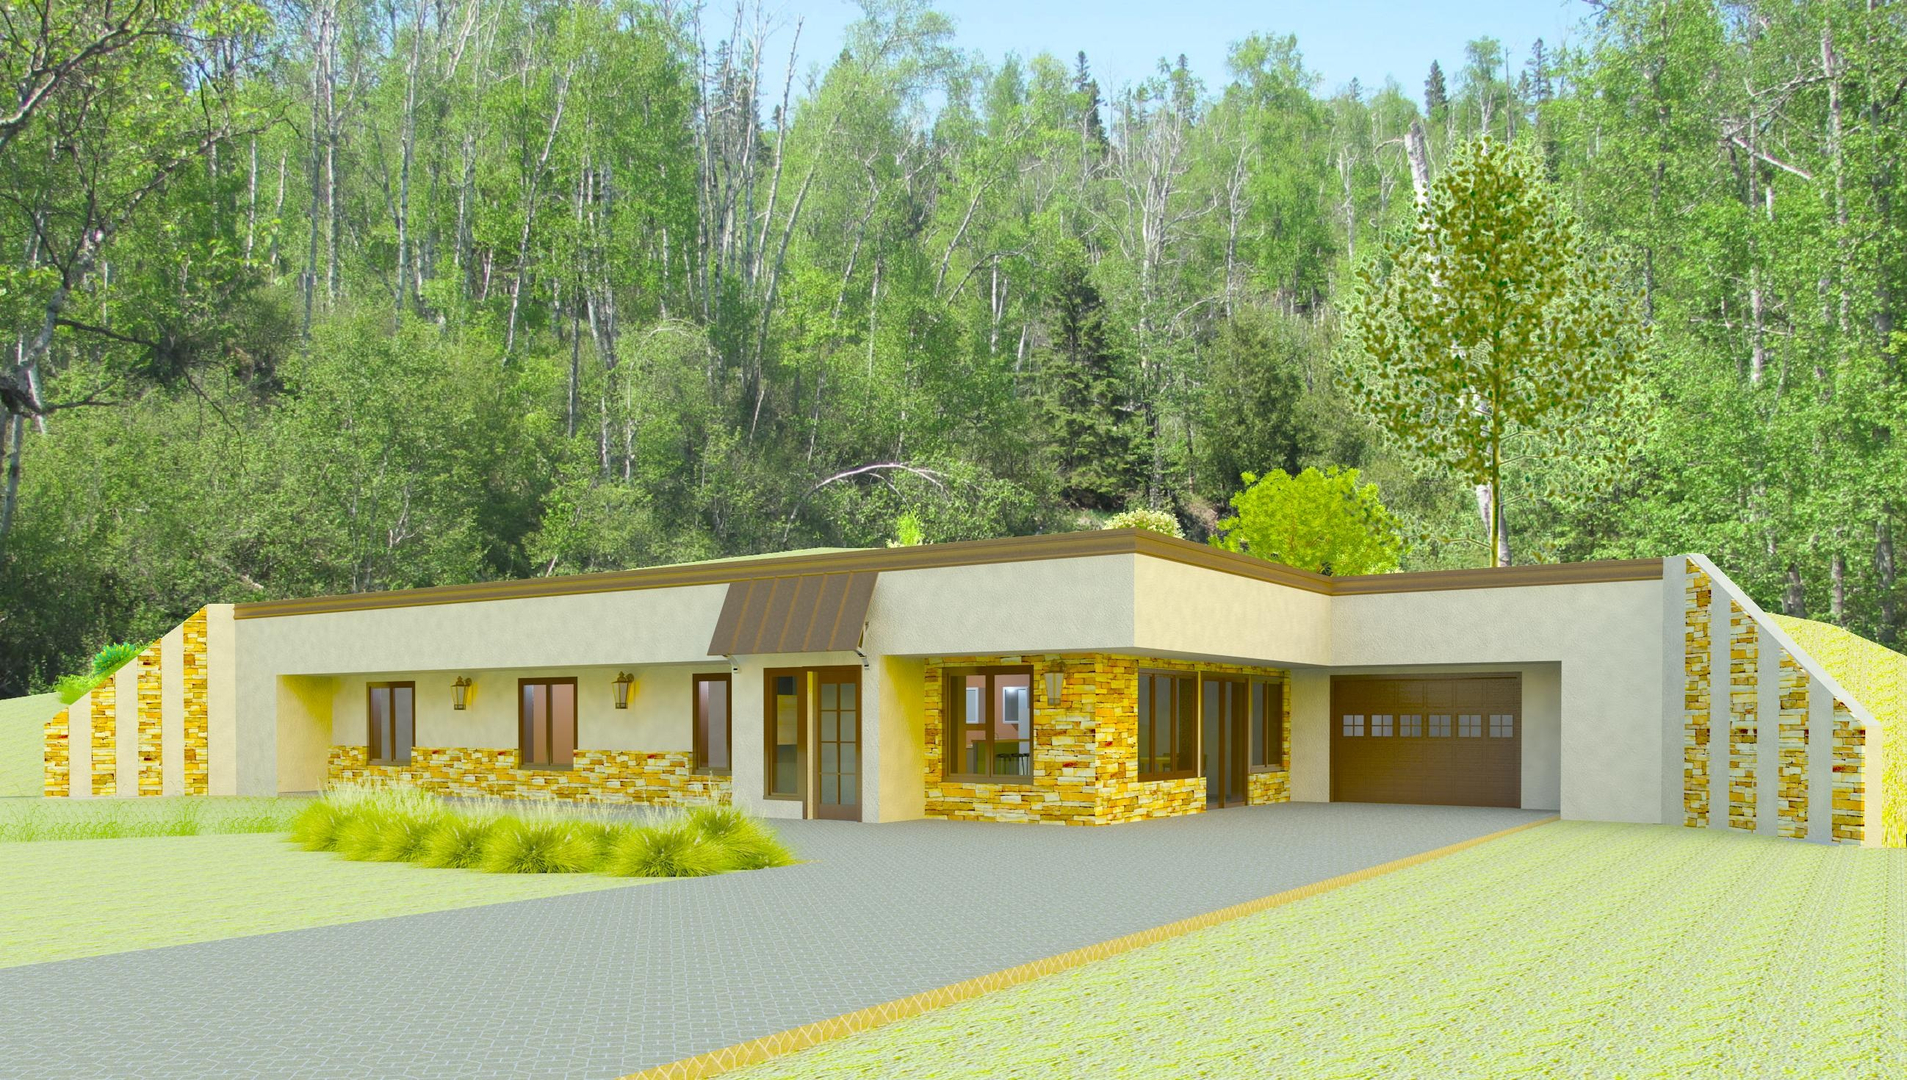 earth berm home designs home and landscaping design berm home plans joy studio design gallery best design